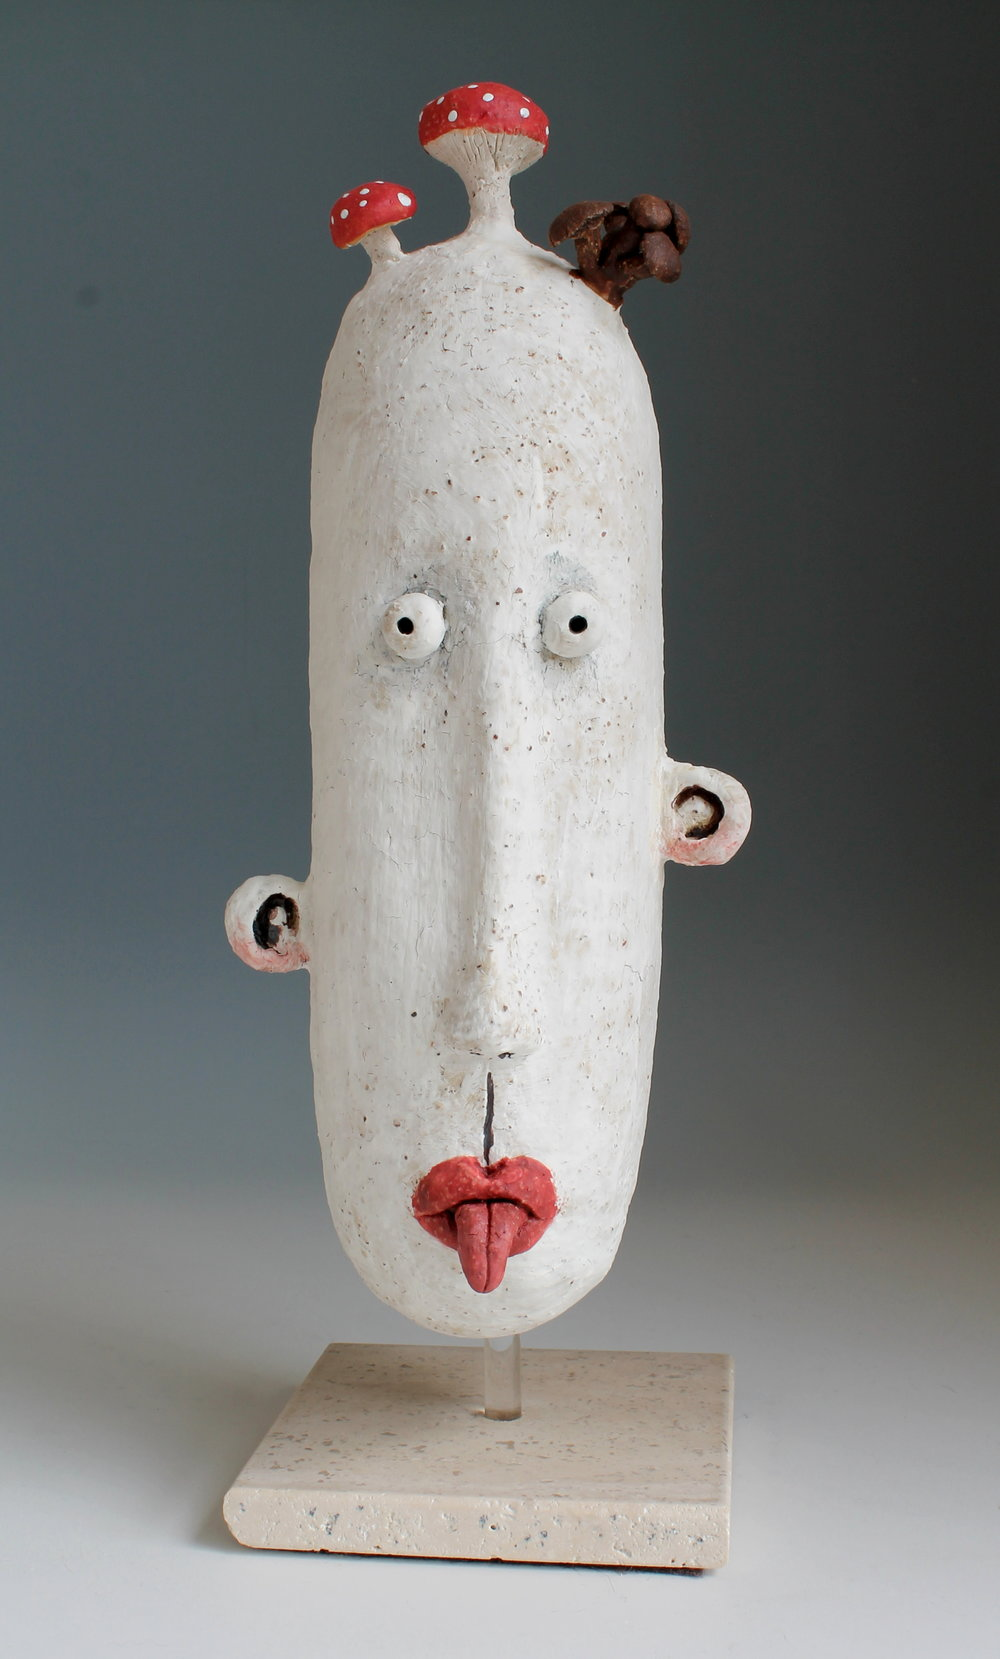 Midori Takaki - Figurative Ceramics with a real Japanese influence - £340 to £550